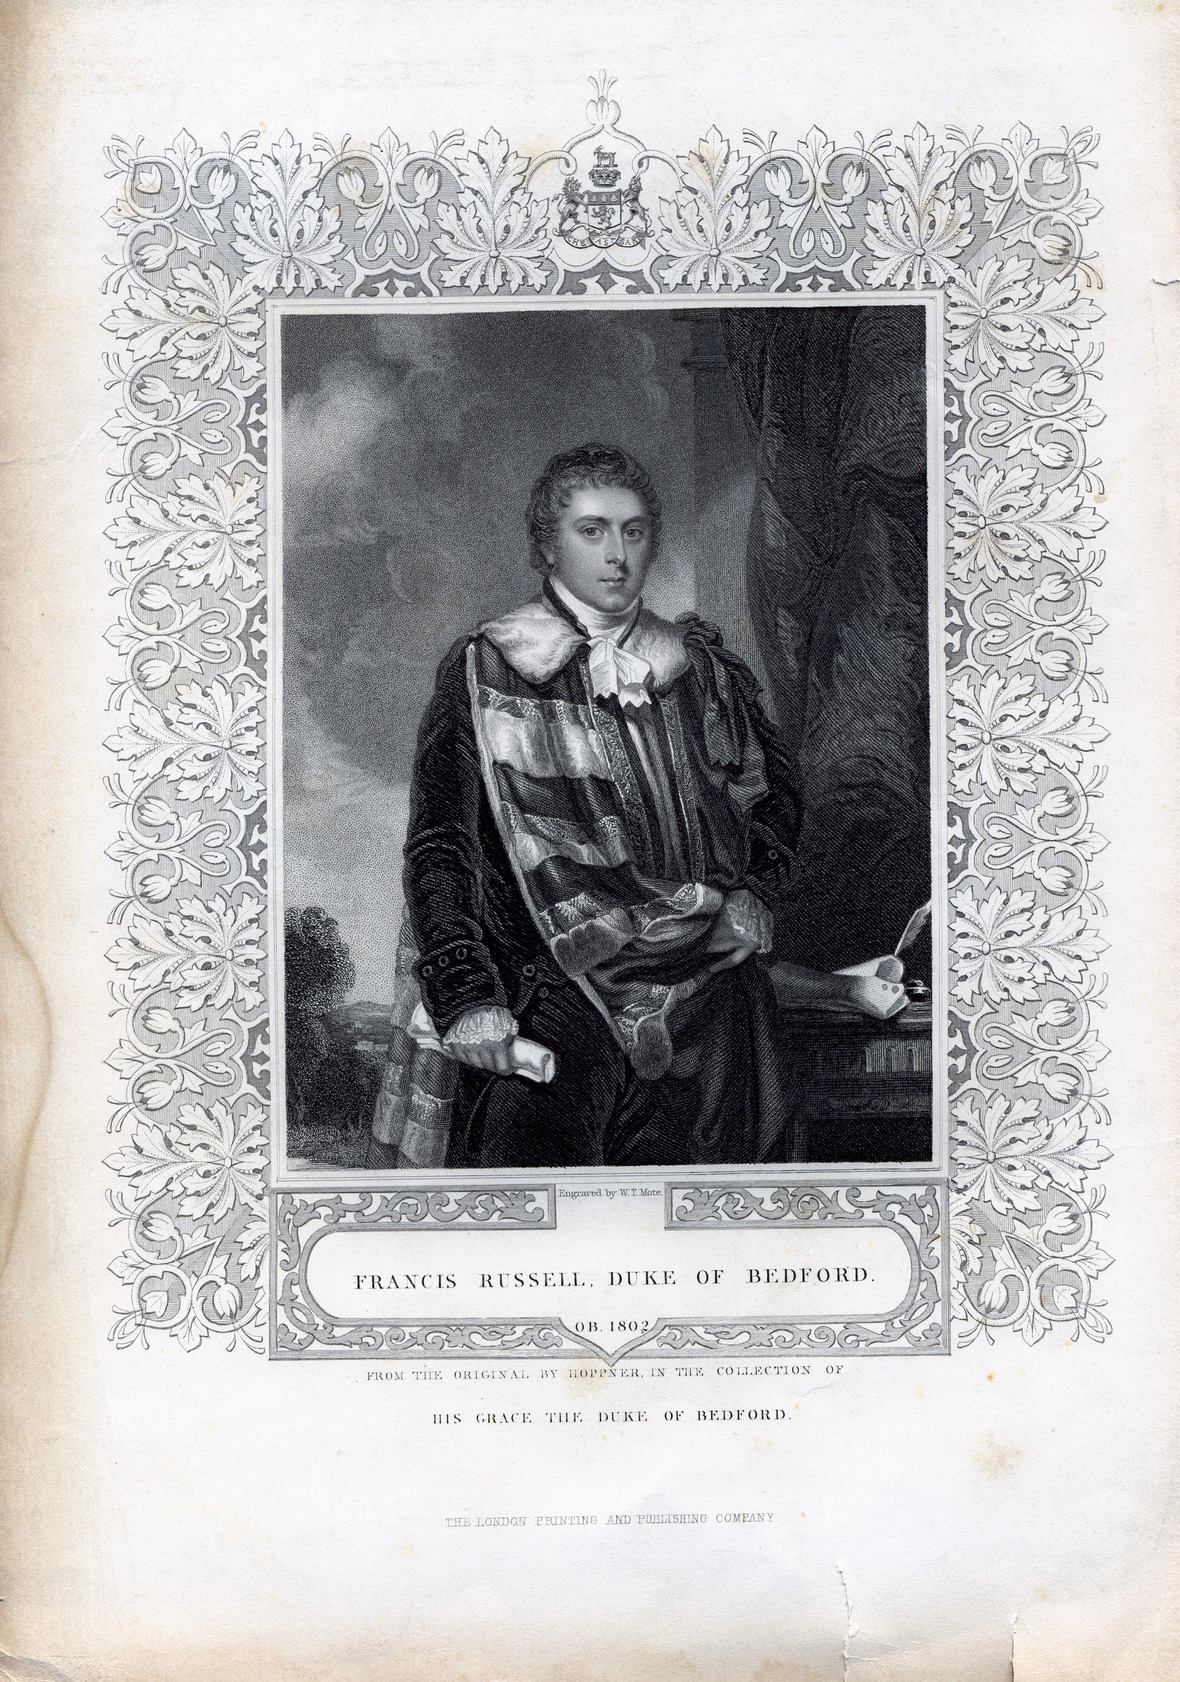 Engraved ortrait of Francis Russell, Duke of Bedford